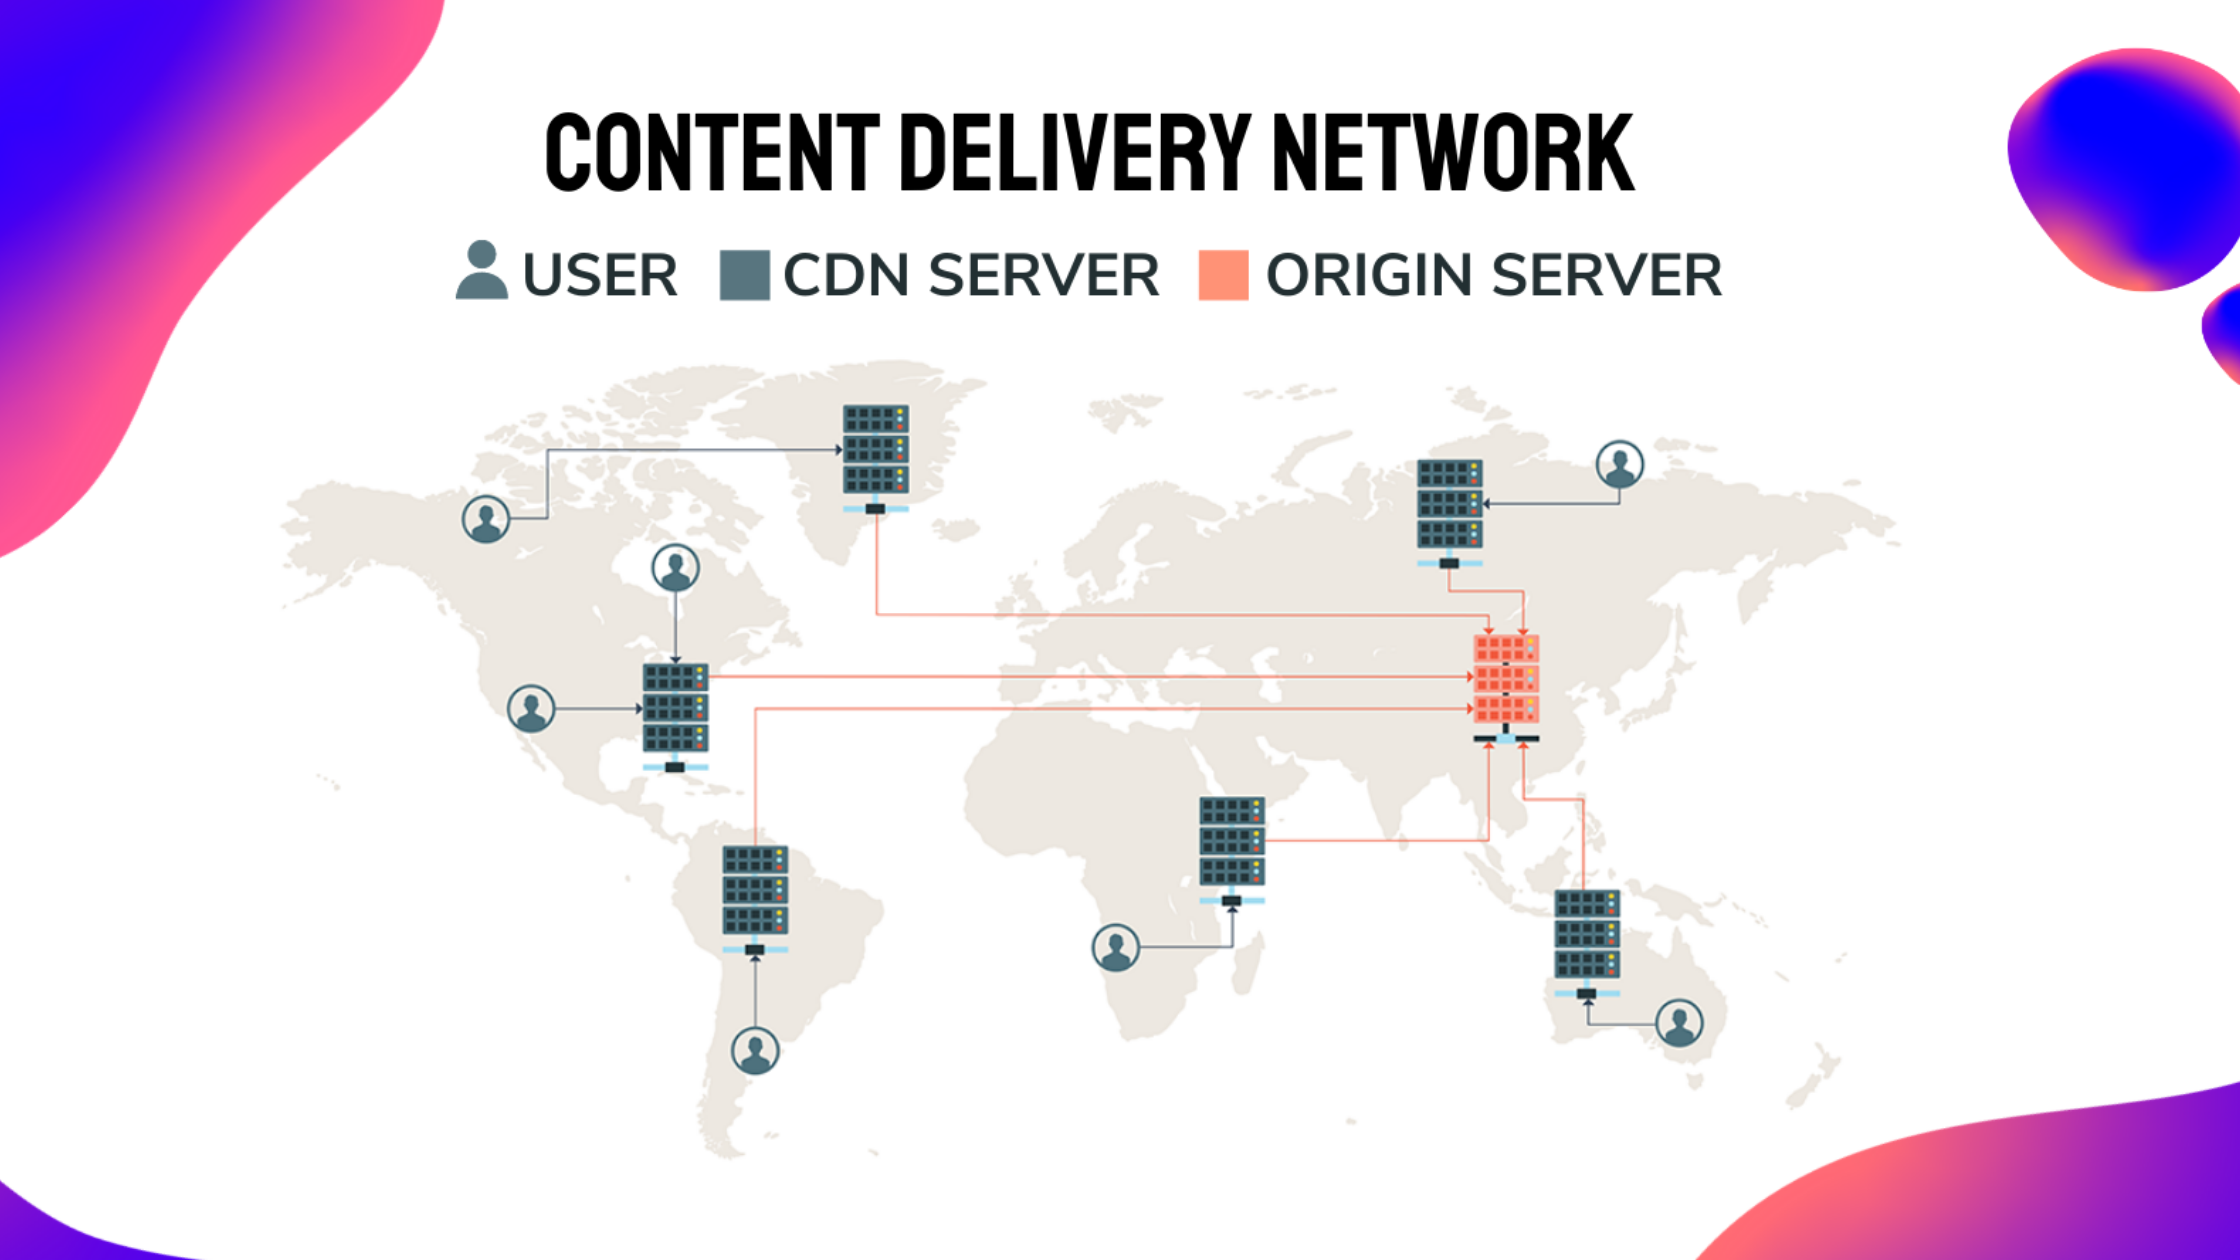 5 Benefits of Content Delivery Network (CDN)